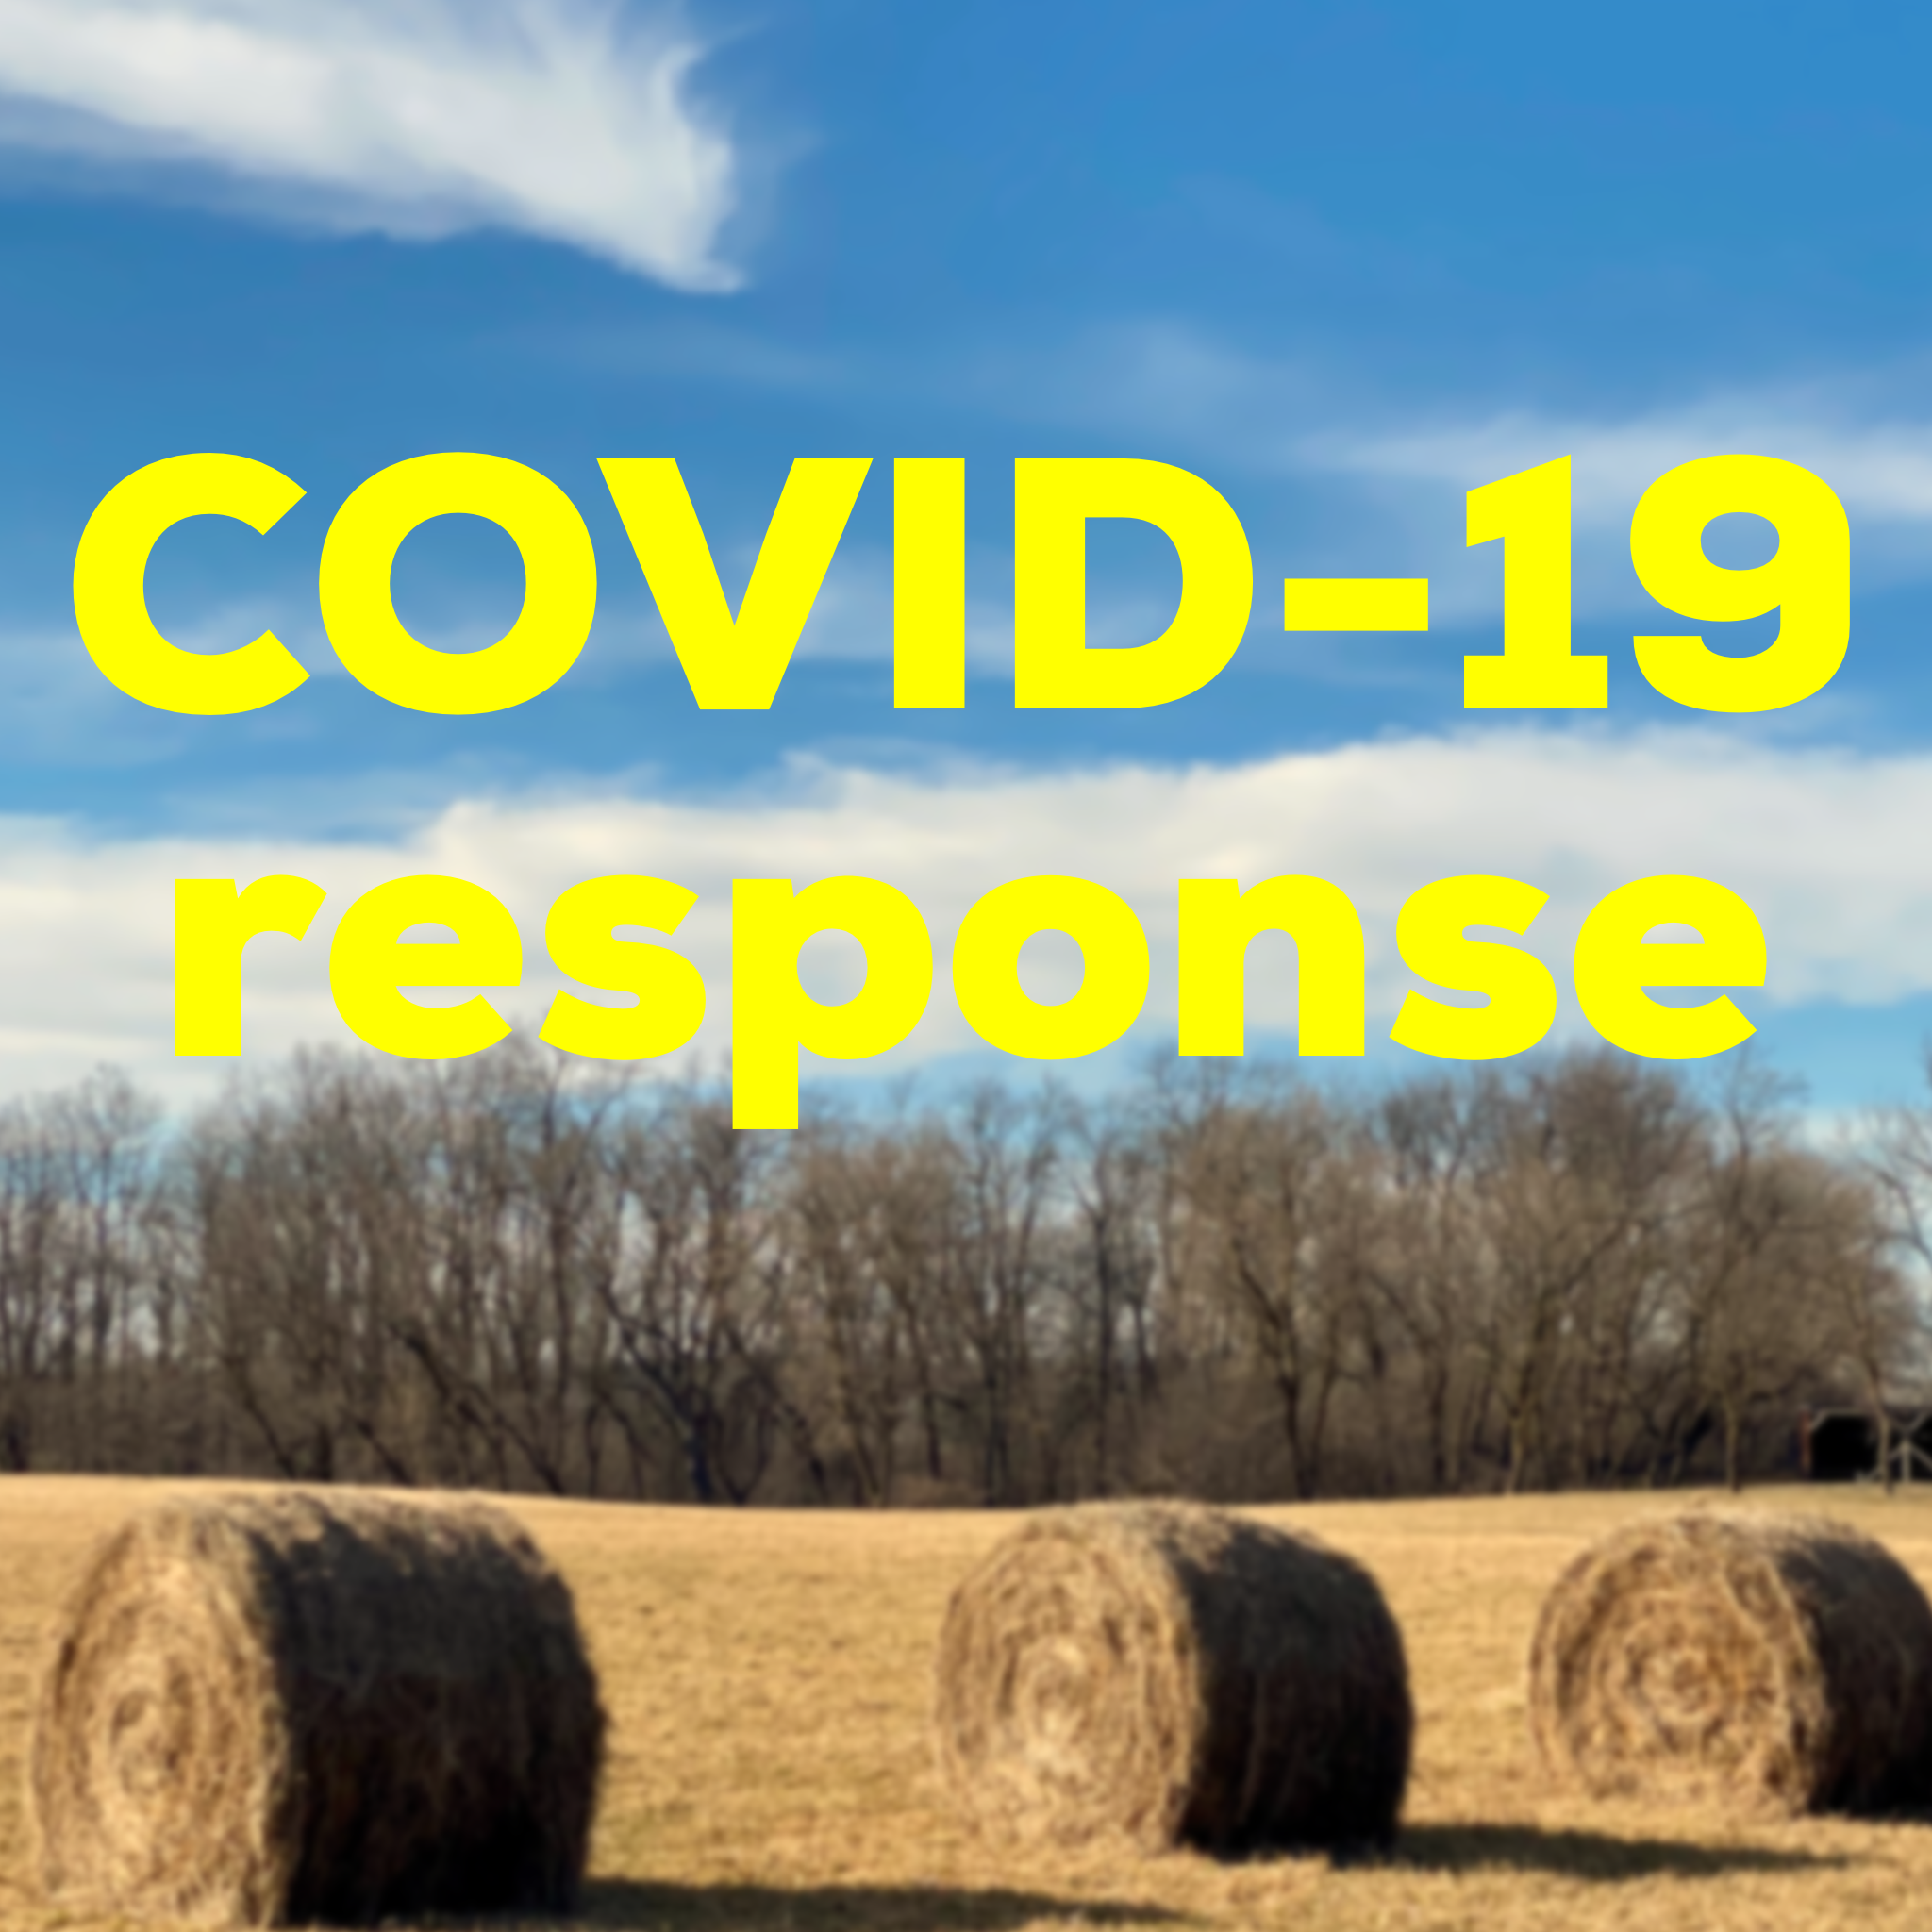 Image of hay bales on ground with text Covid-19 Response.